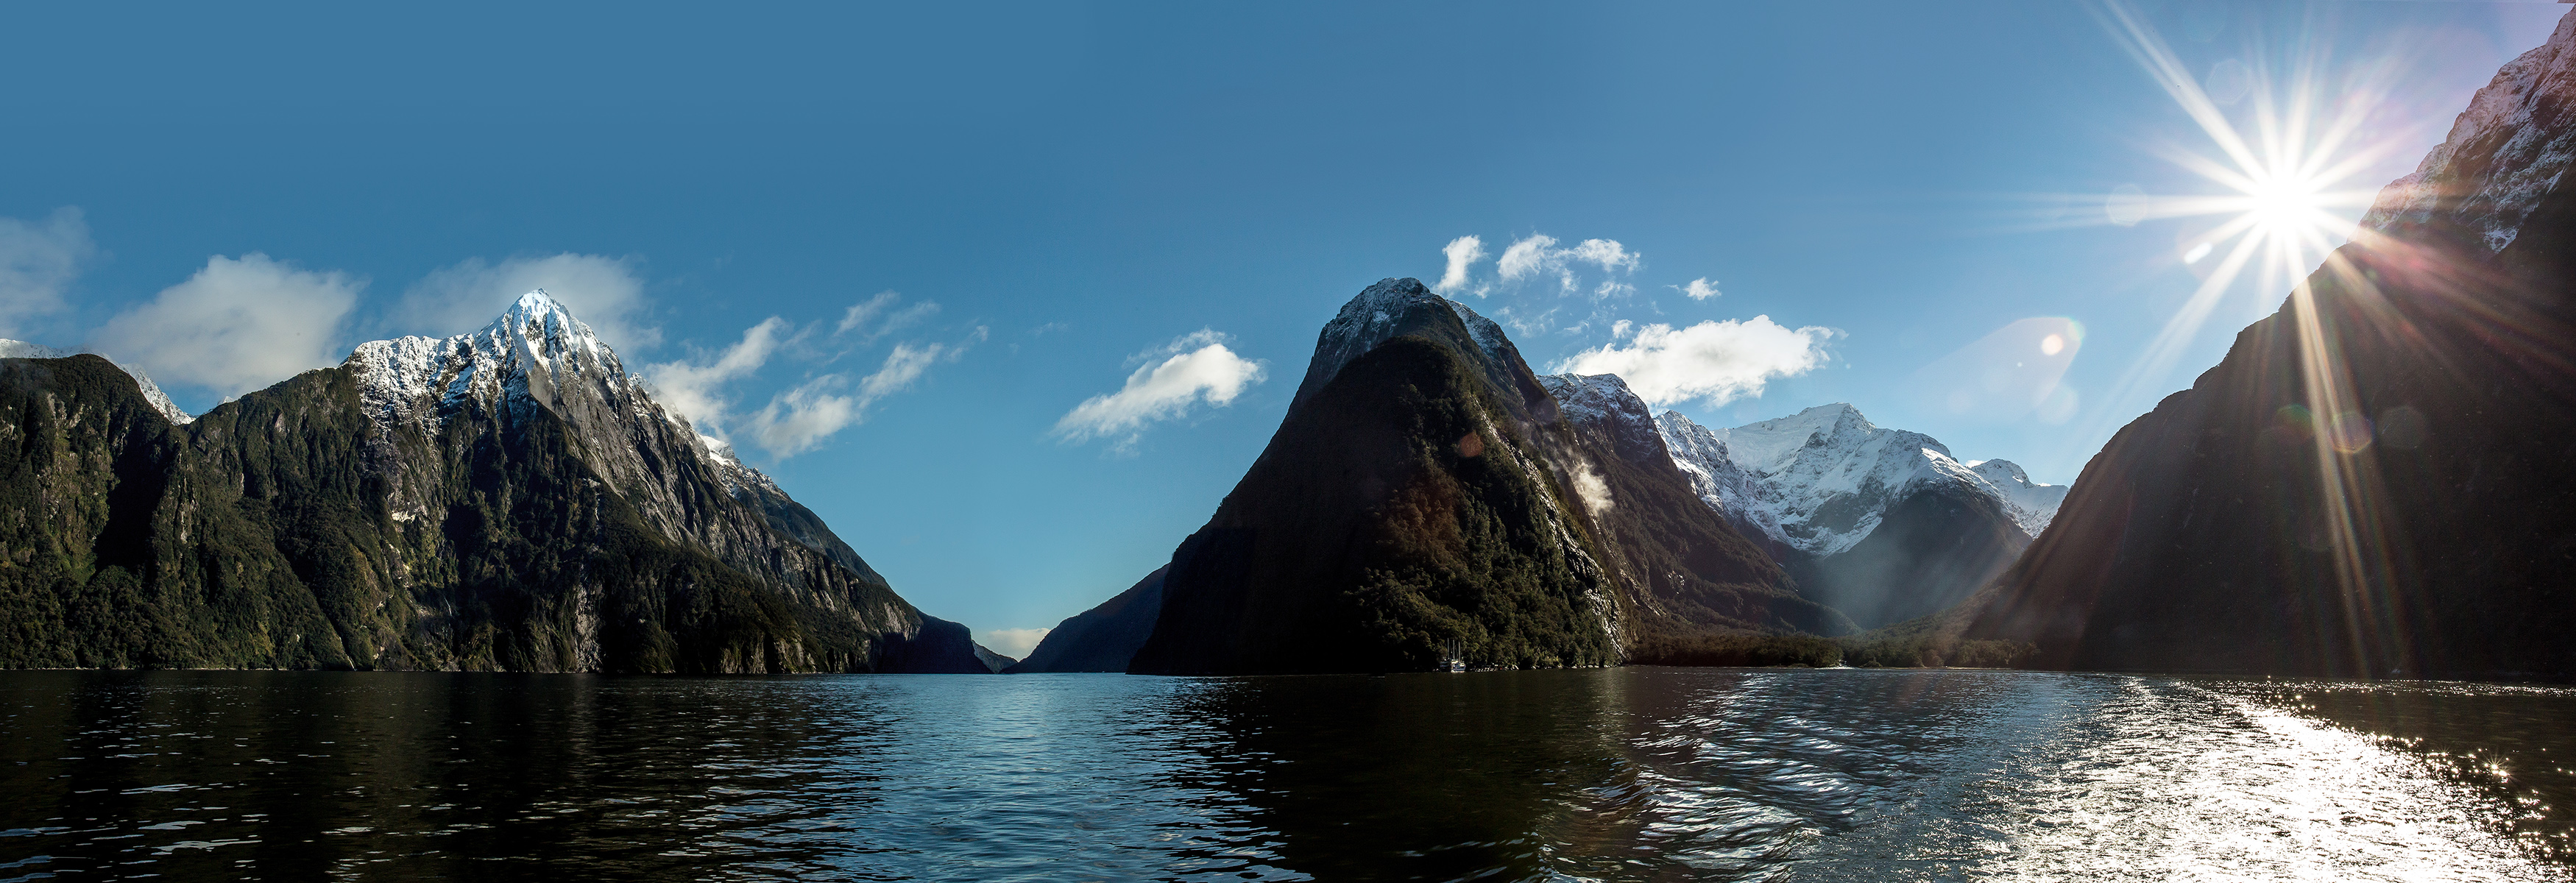 The Magical Milford Sound